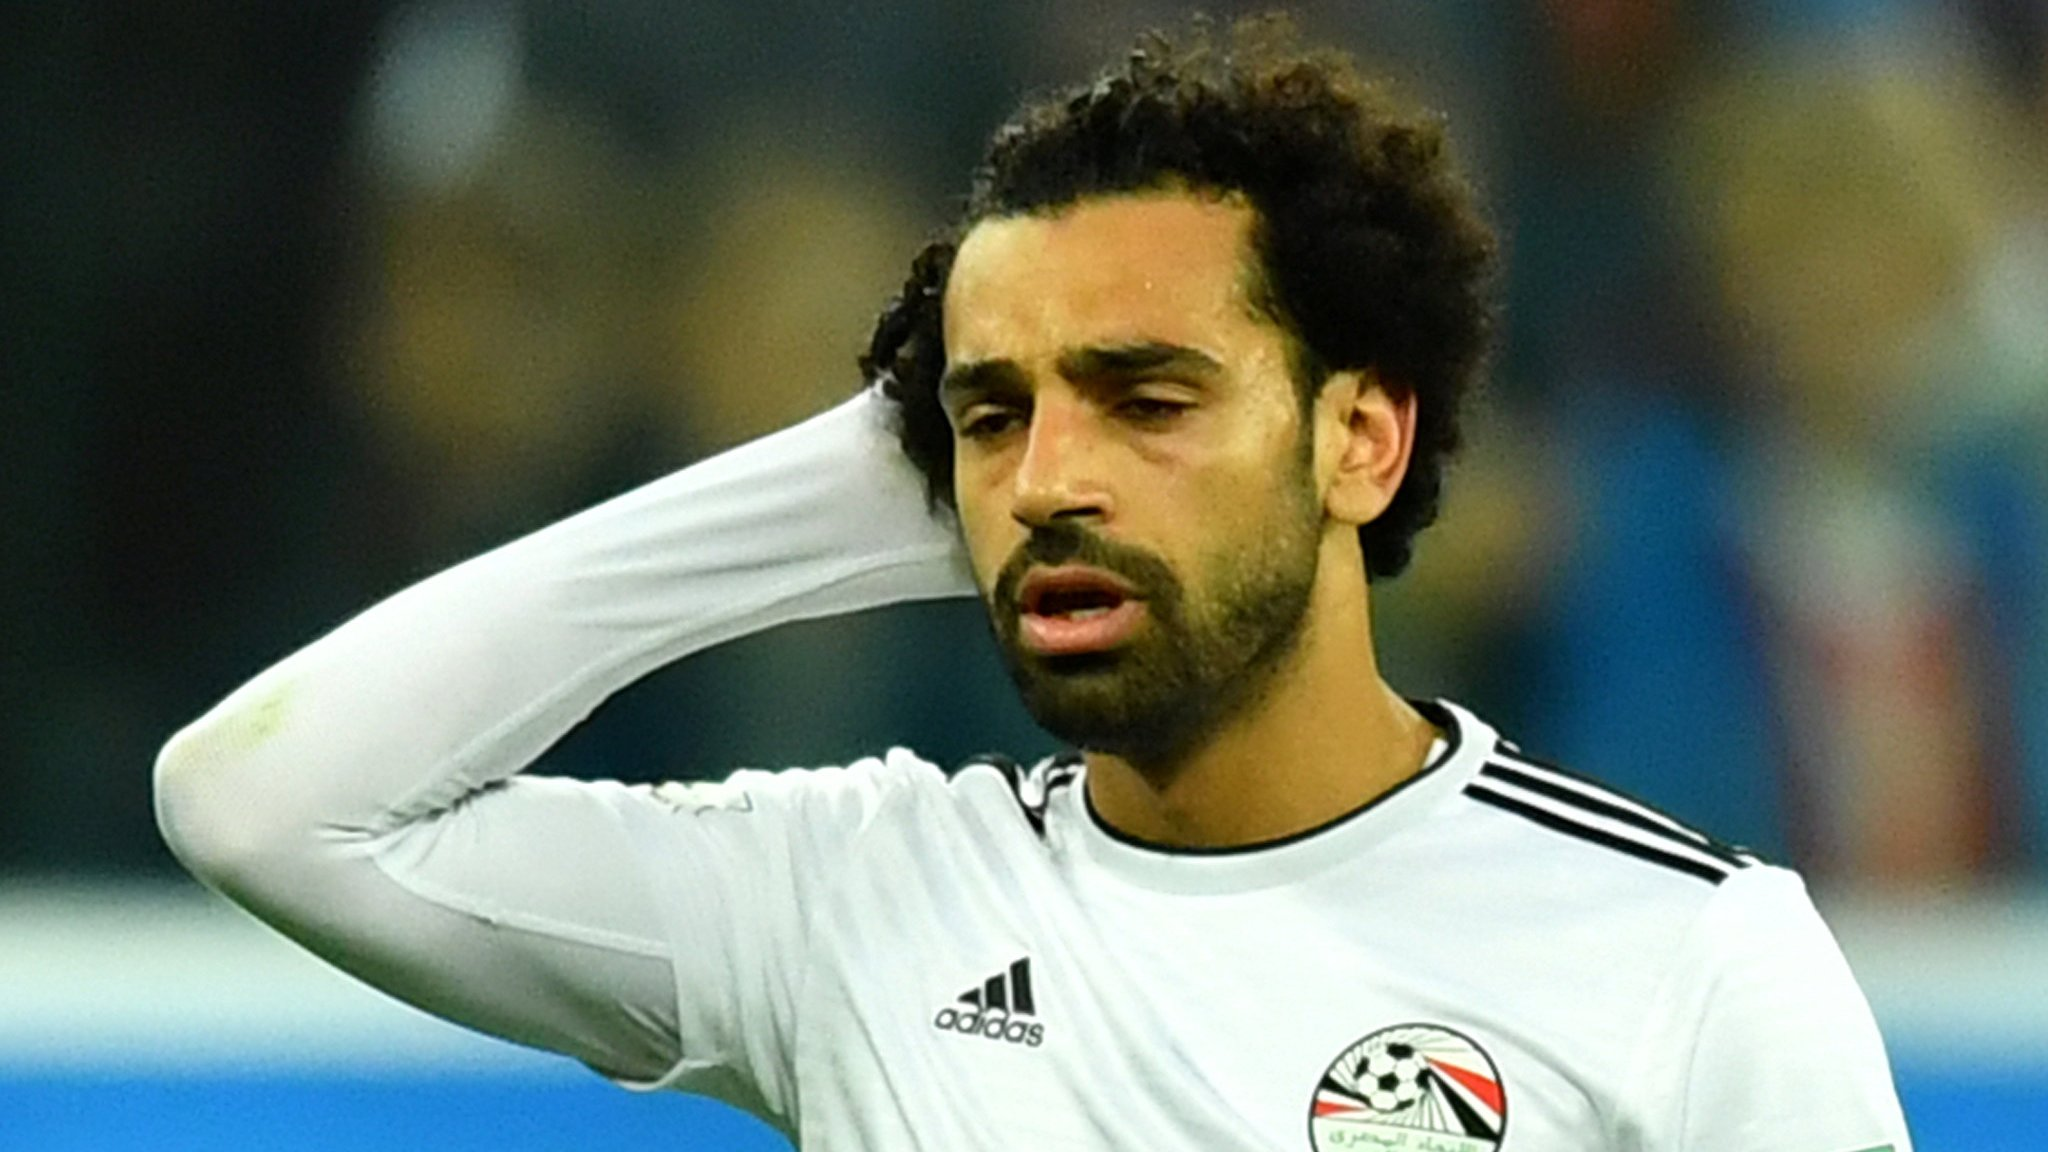 World Cup 2018: Russia 3-1 Egypt - how the players rated